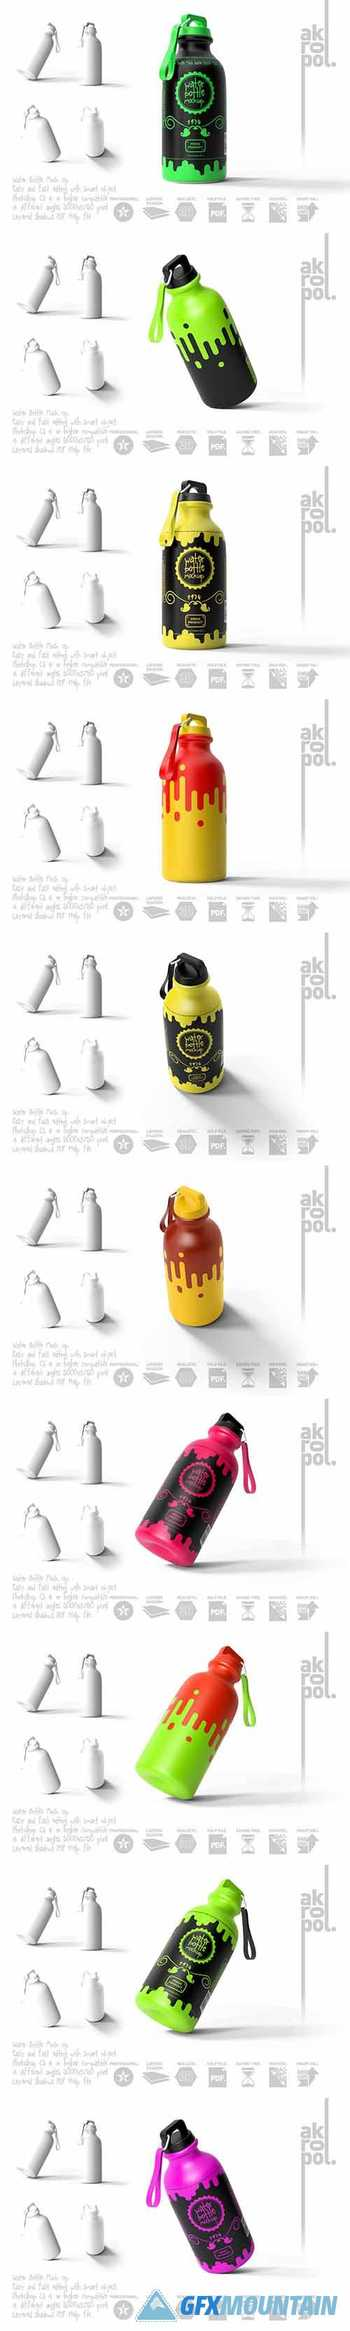 Reusable Water Bottle MockUp 5750685